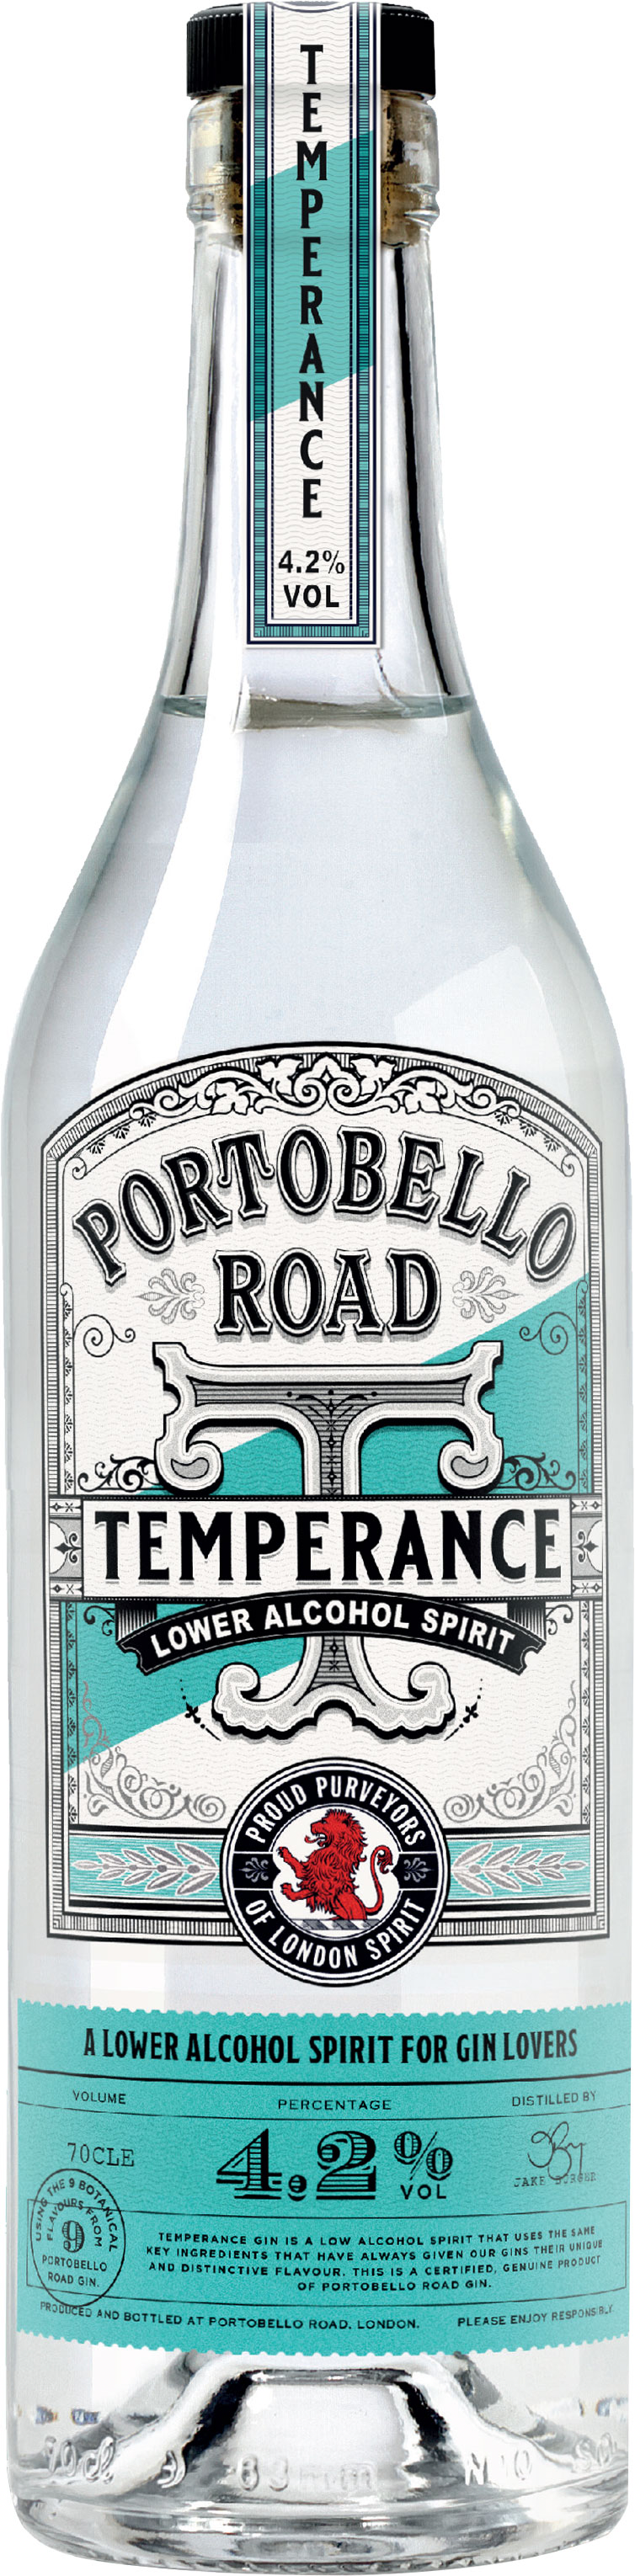 Portobello Road - Temperance Gin 70cl Bottle